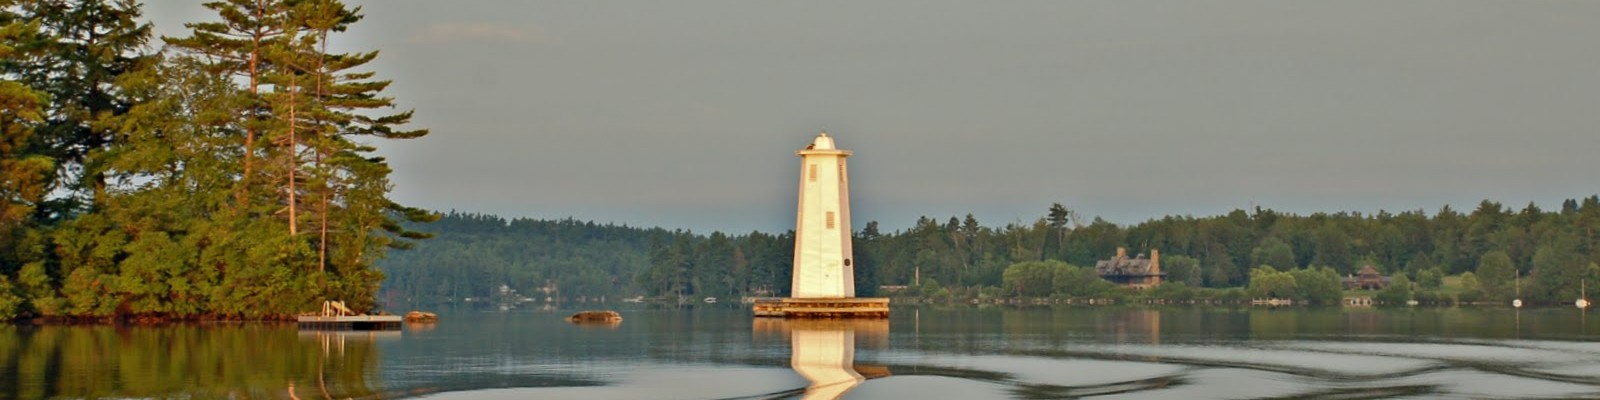 Lighthouse on Lake Sunapee